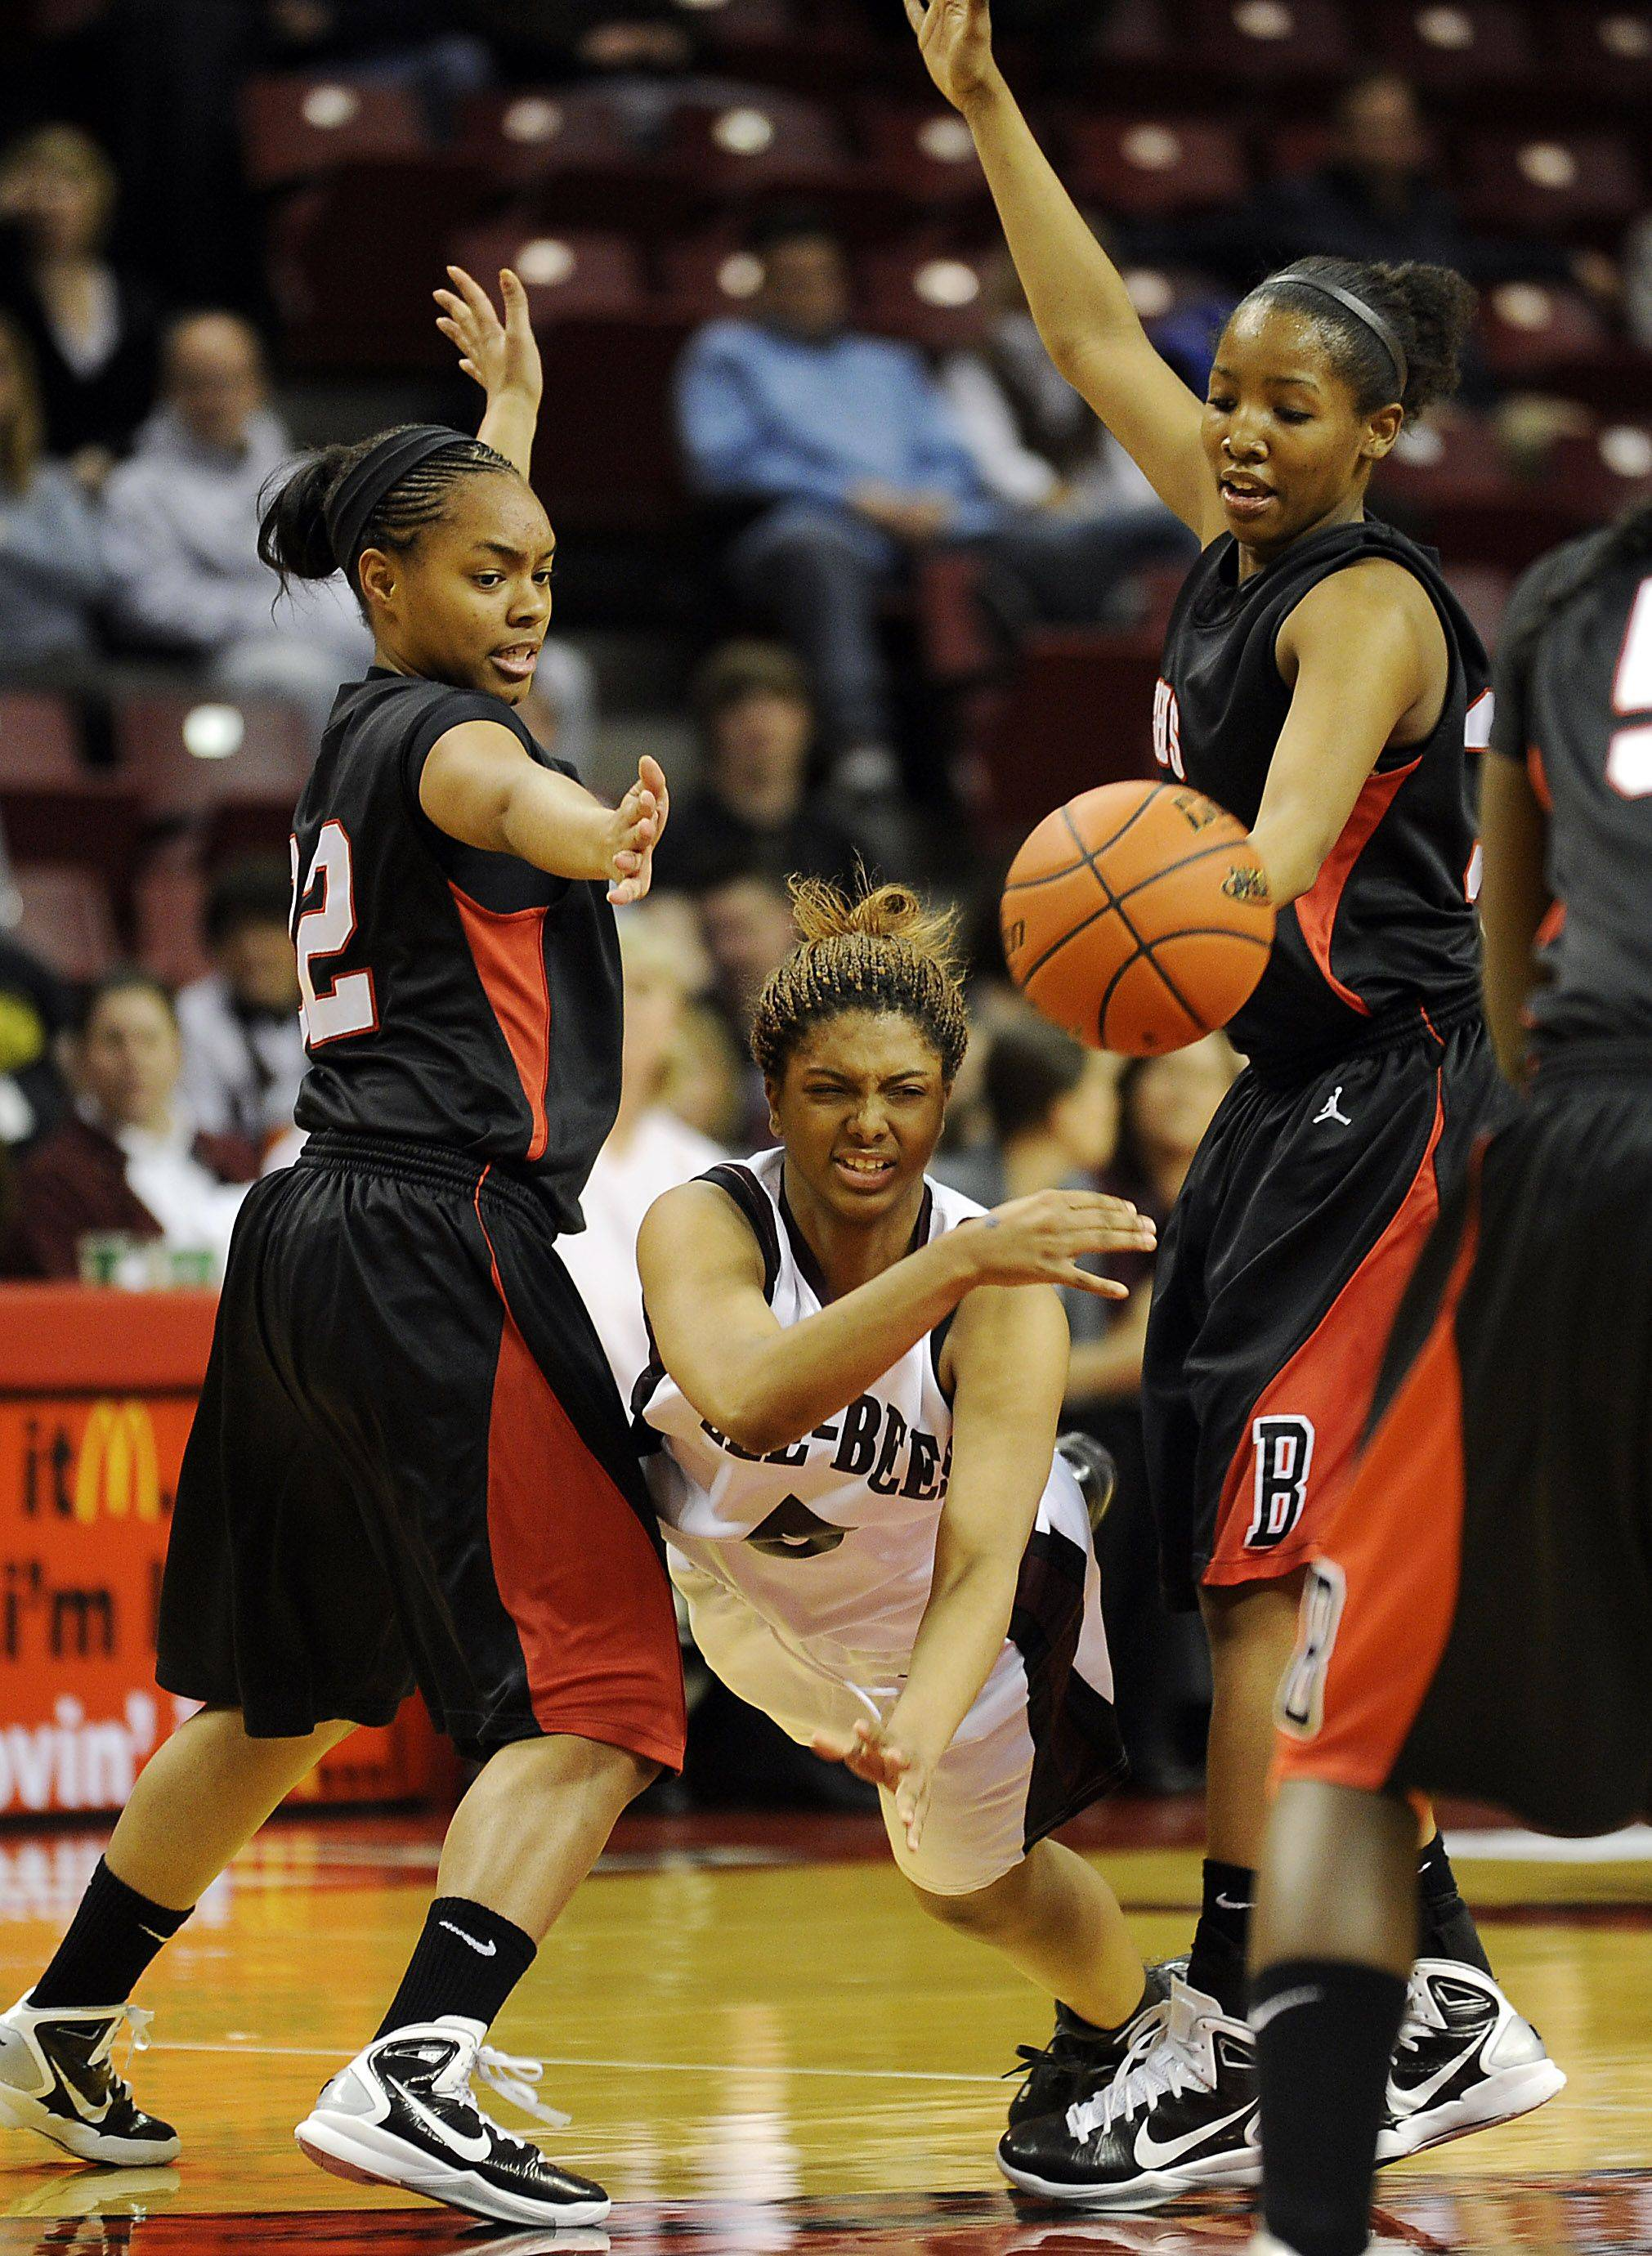 Zion-Benton's Helena Rodriguez drives for the basket but pressure from Bolingbrook's Kierra Ray and Allie Hill forces her to pass the ball in the first half in the girls Class 4A Girls Basketball Tournament at the Redbird Arena in Normal on Saturday.